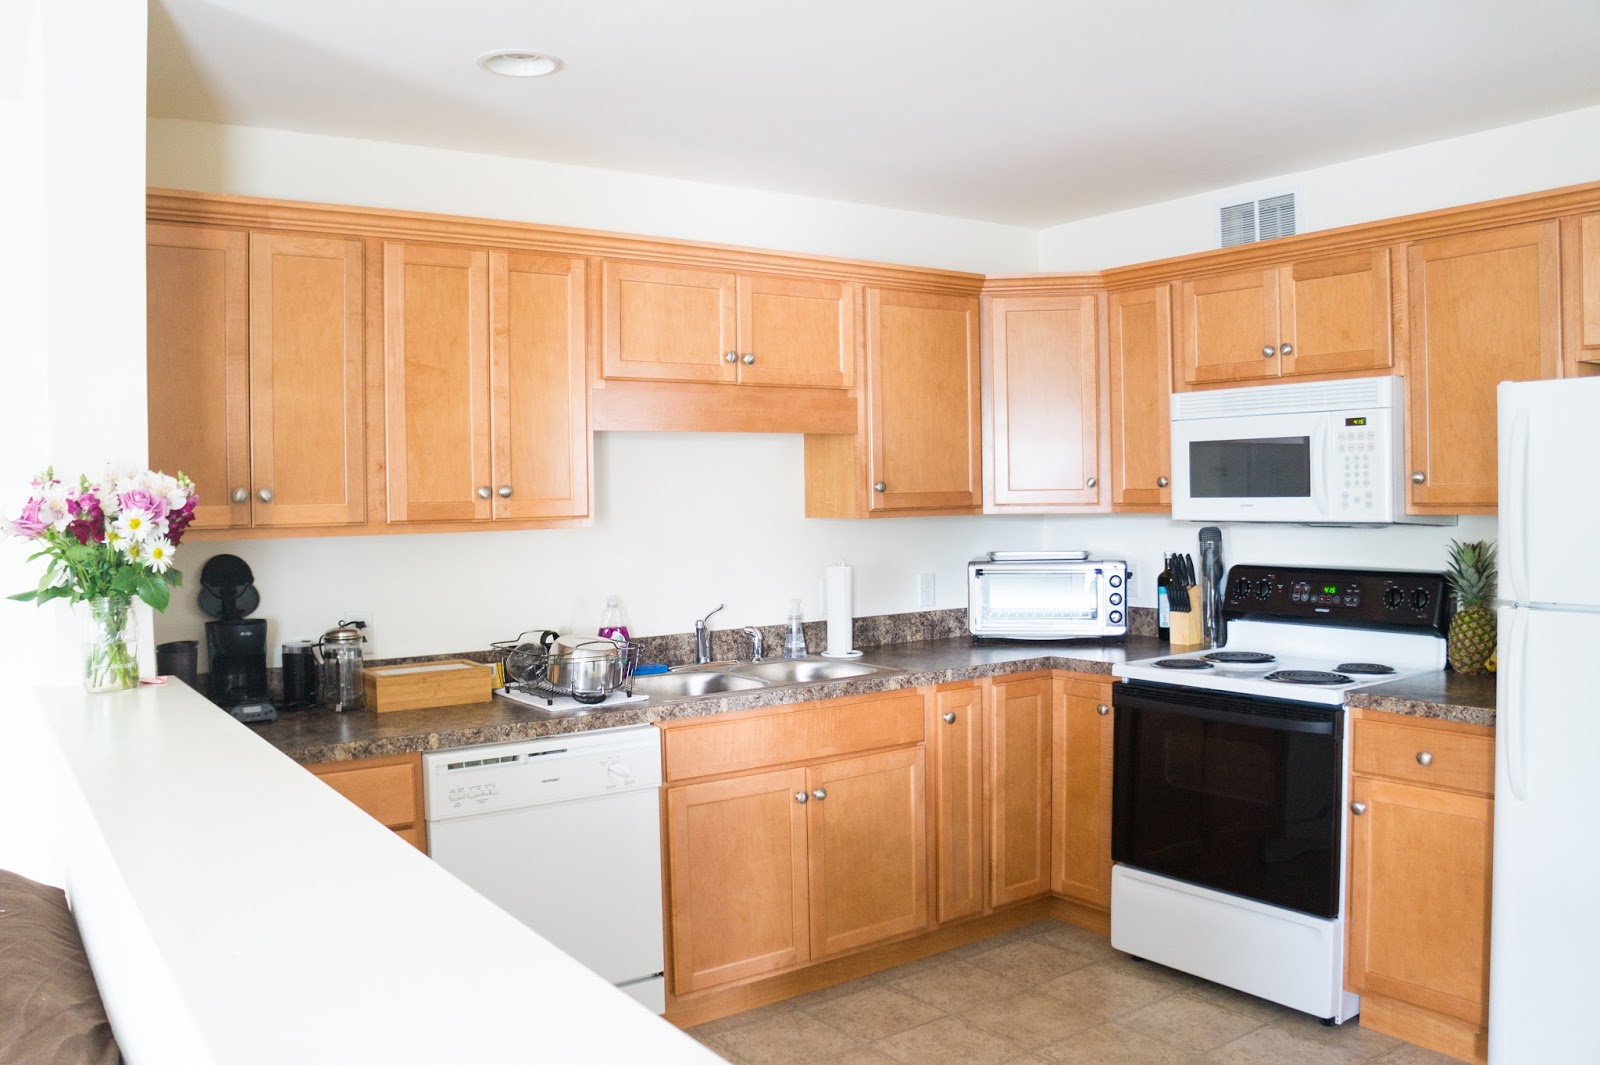 Kitchen with natural colored cabinets